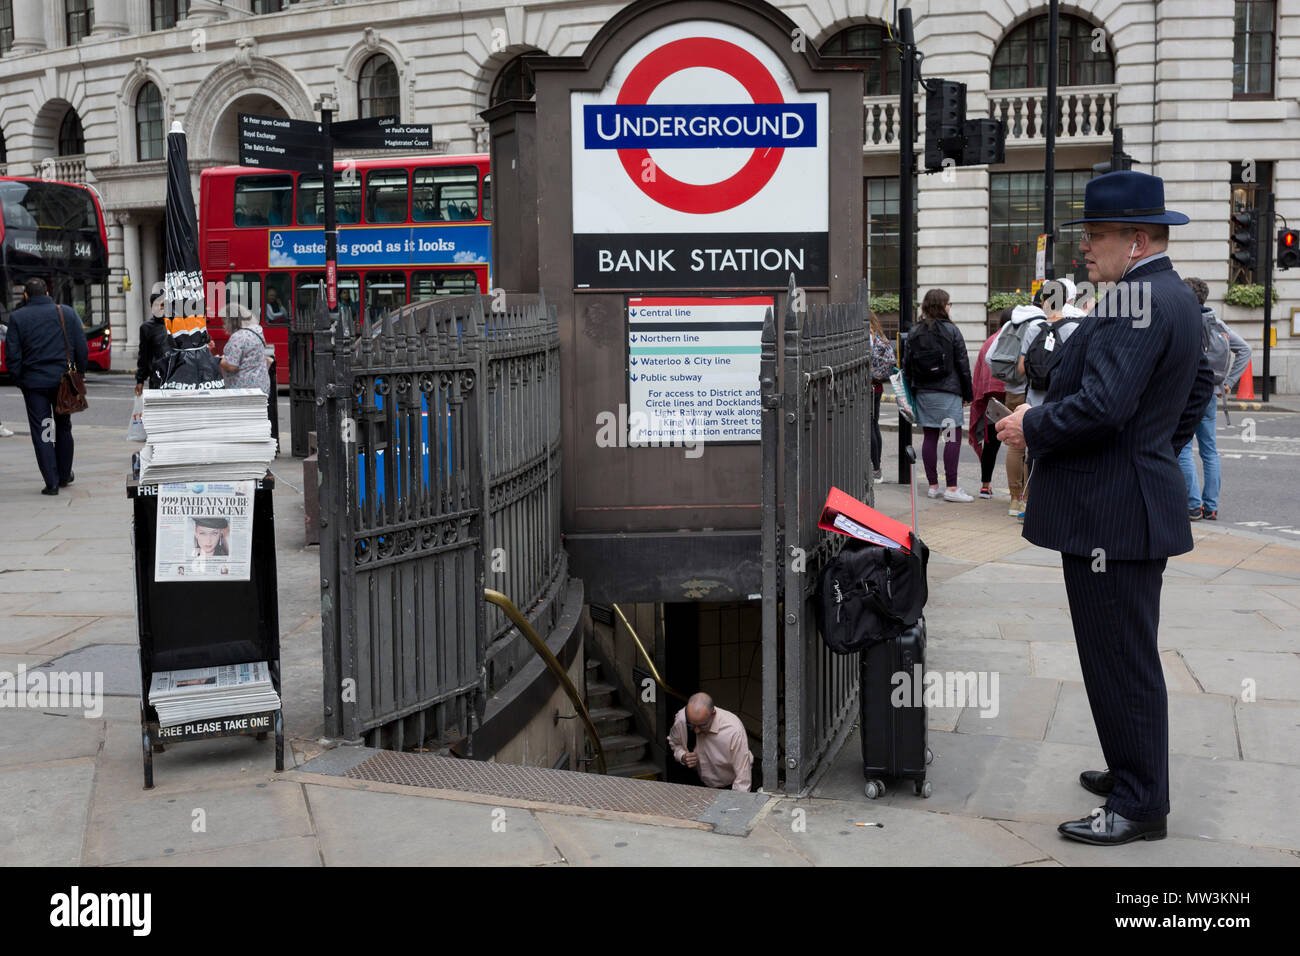 A businessman uses his mobile phone and another emerges from Bank Underground Station at the corner of King William Street in the City of London, on 30th May 2018, in London, England. Stock Photo